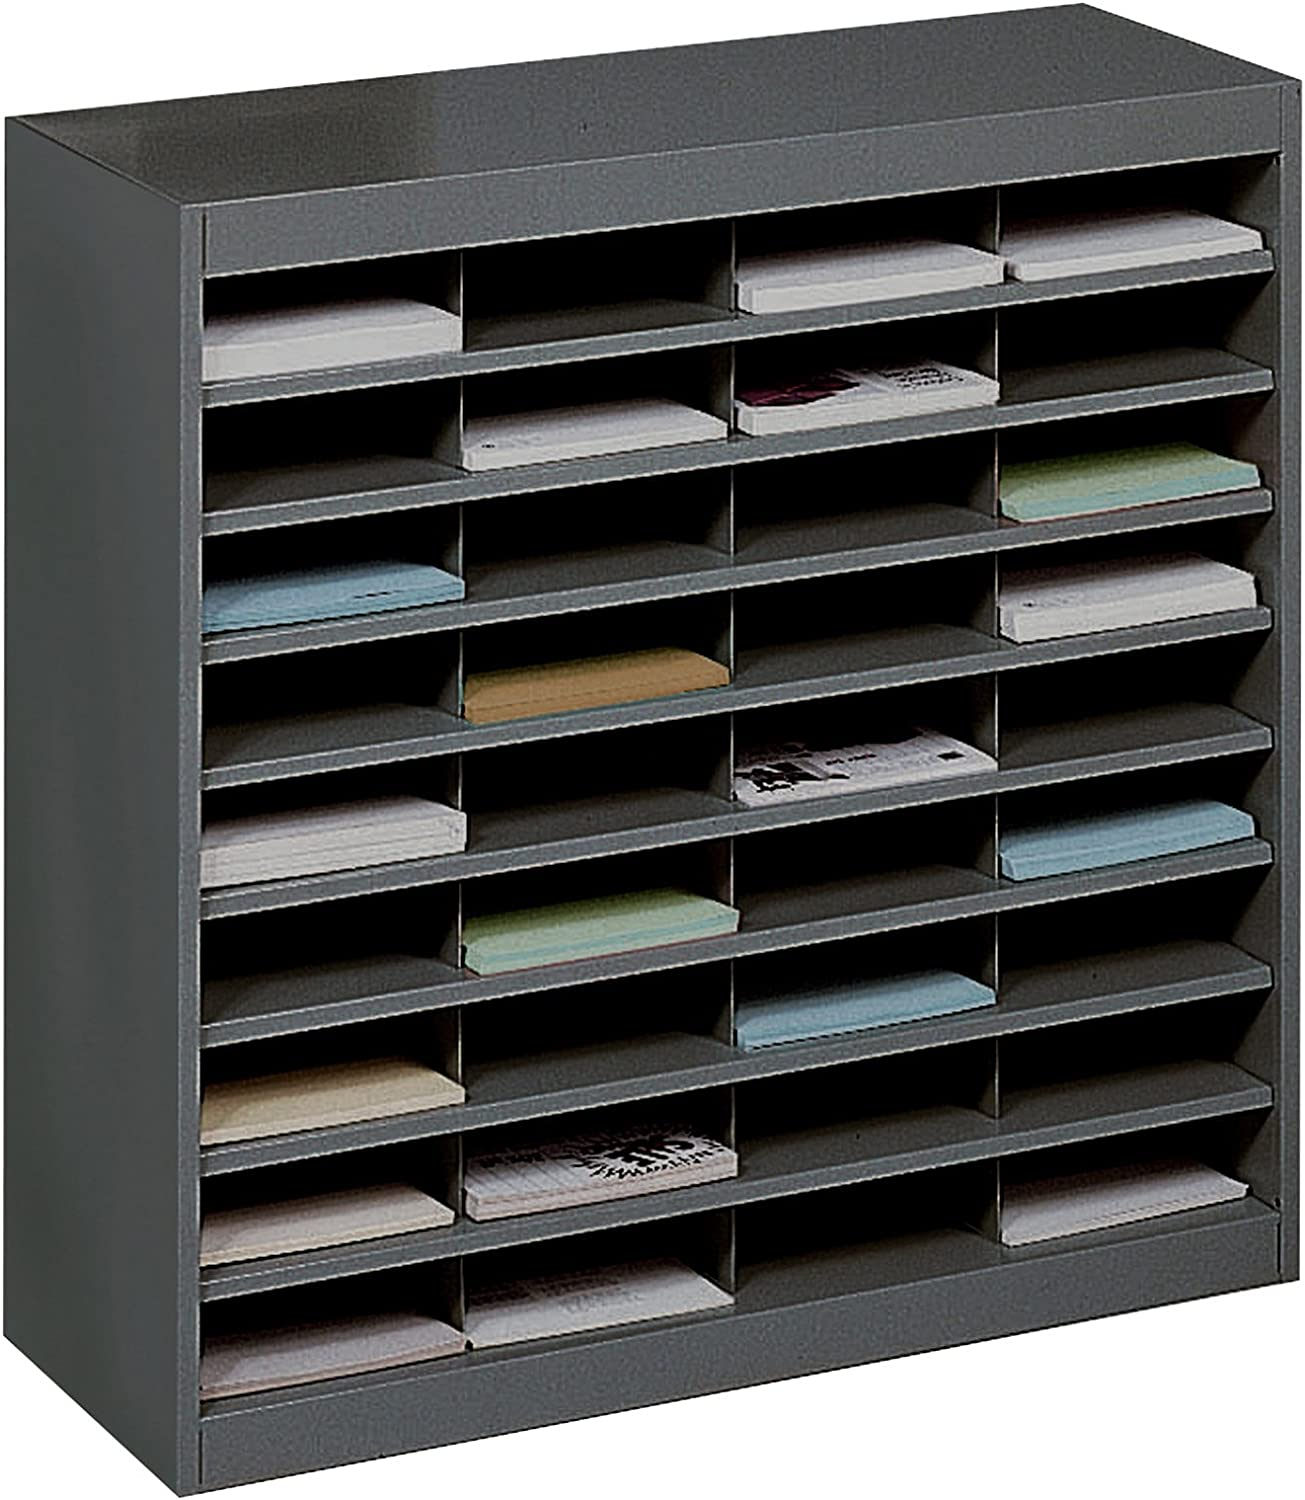 Safco Products E-Z Stor Literature Organizer, 36 Compartment, 9221BLR, Black Powder Coat Finish, Commercial-Grade Steel Construction, Eco-Friendly